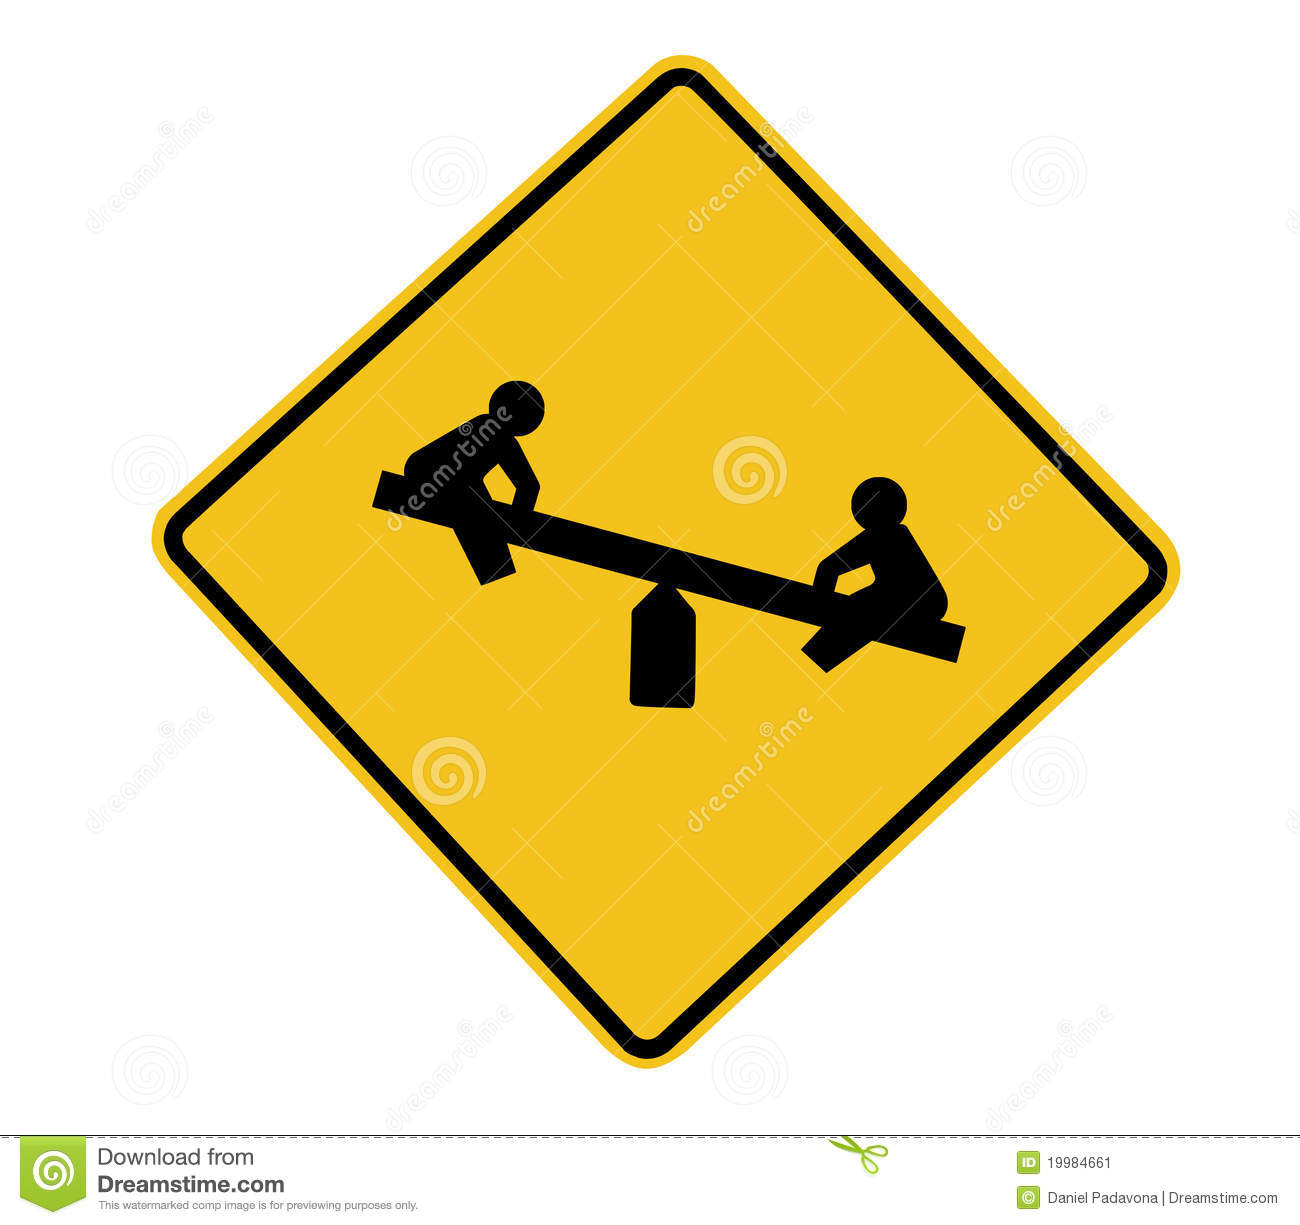 Playground Road Sign Stock Image - Image: 19984661